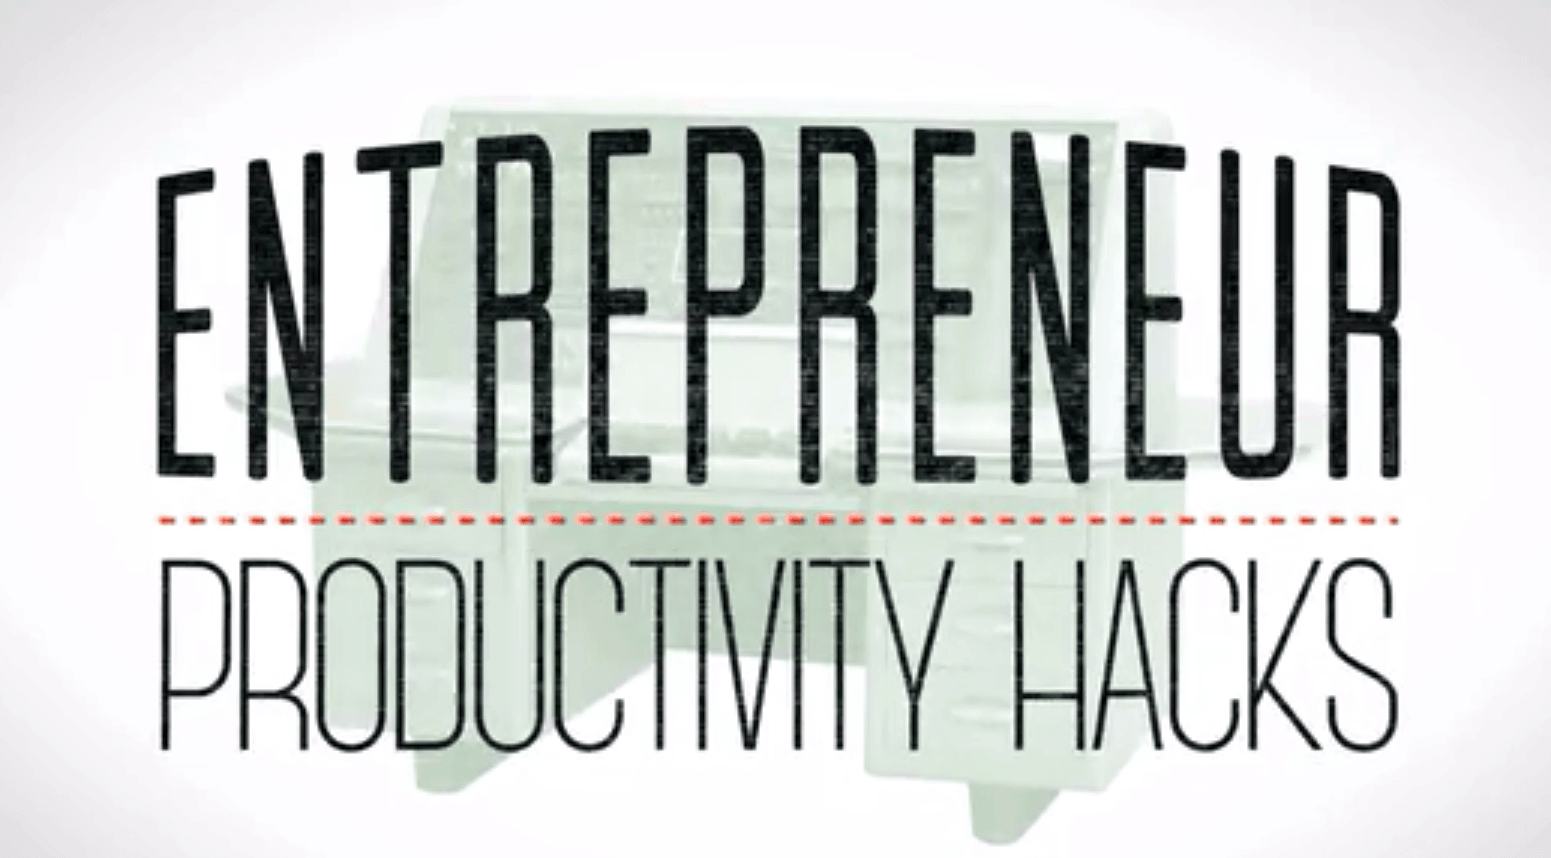 Entrepreneur Productivity Hacks – Joel Widmer